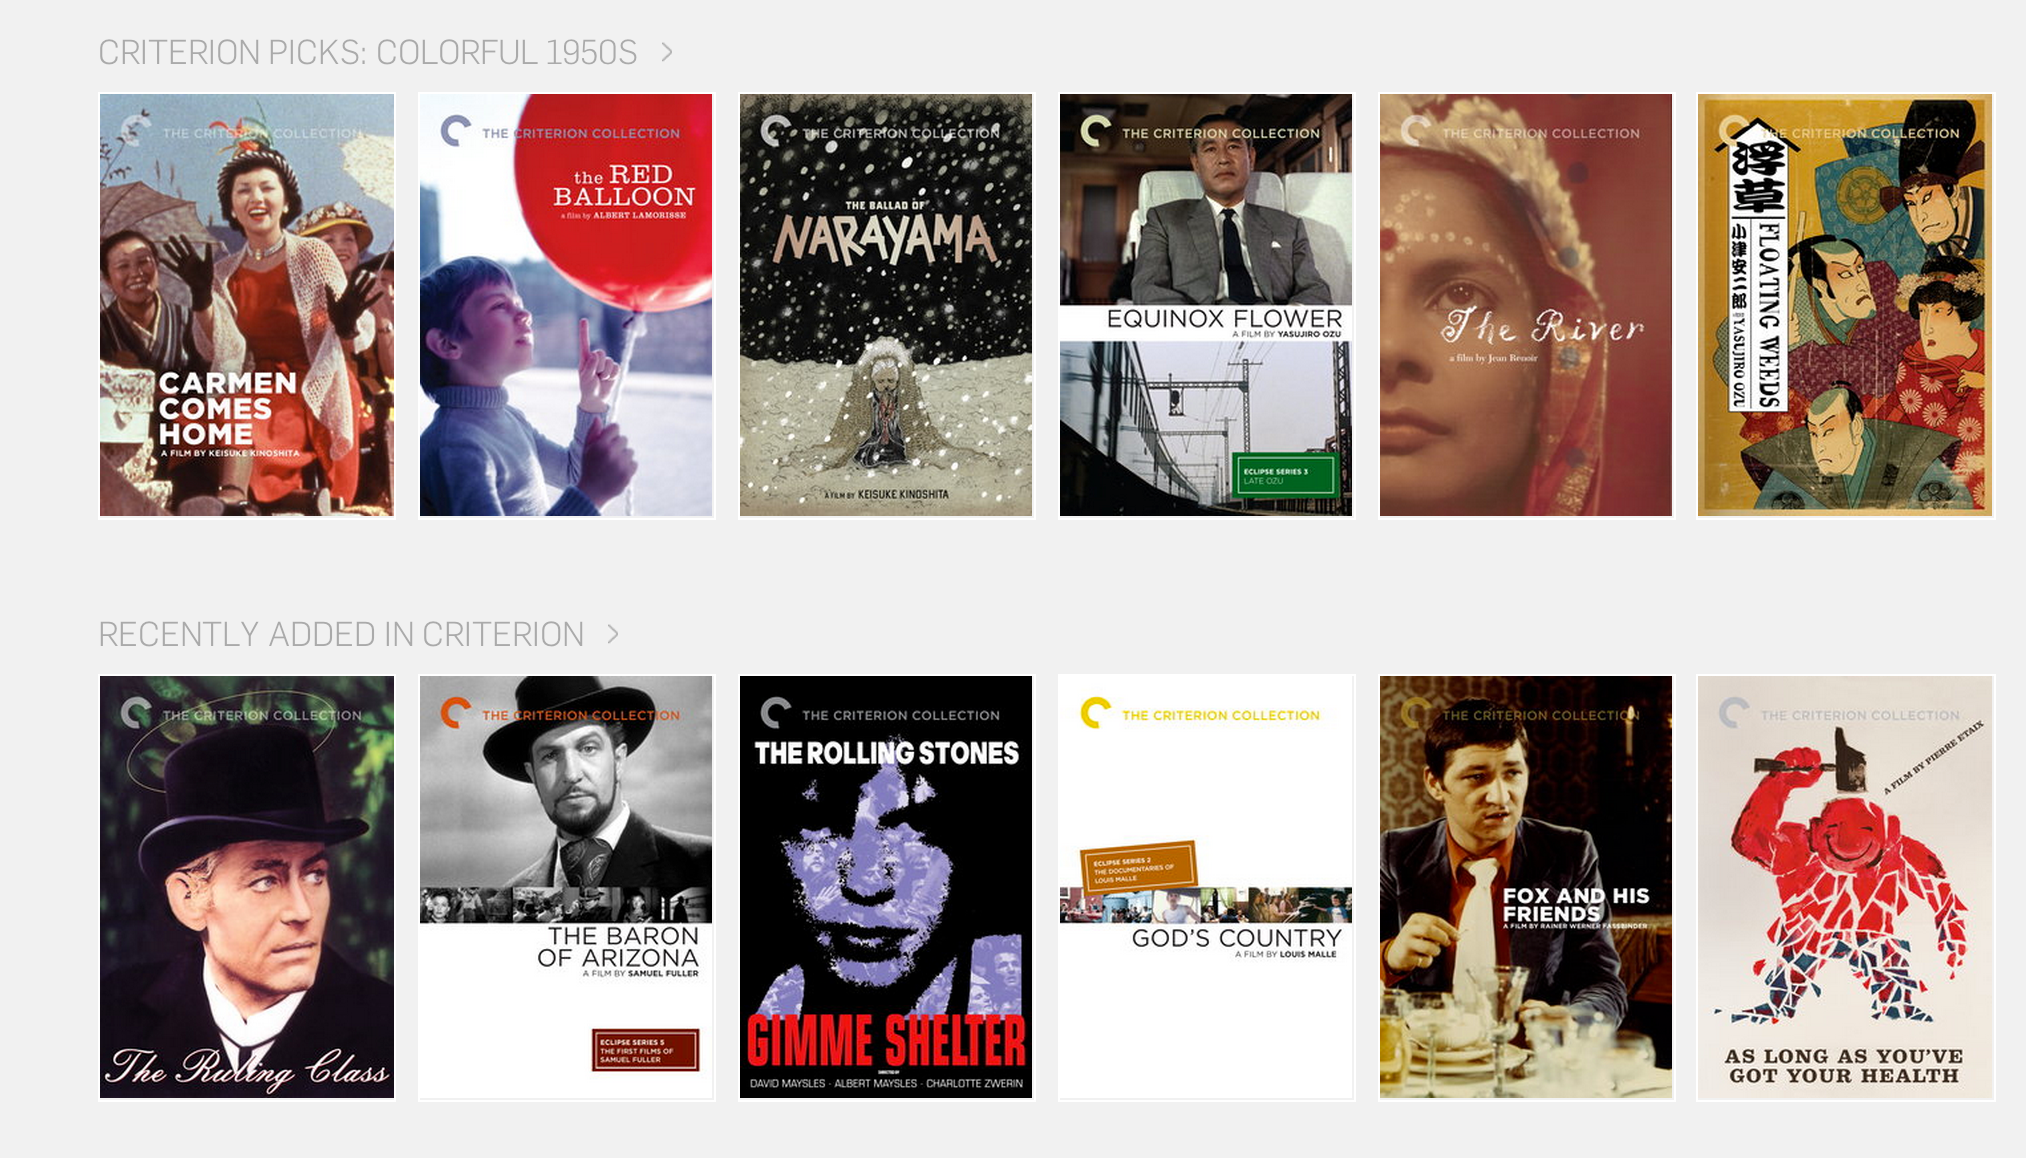 Curating categories in Hulu's Criterion library